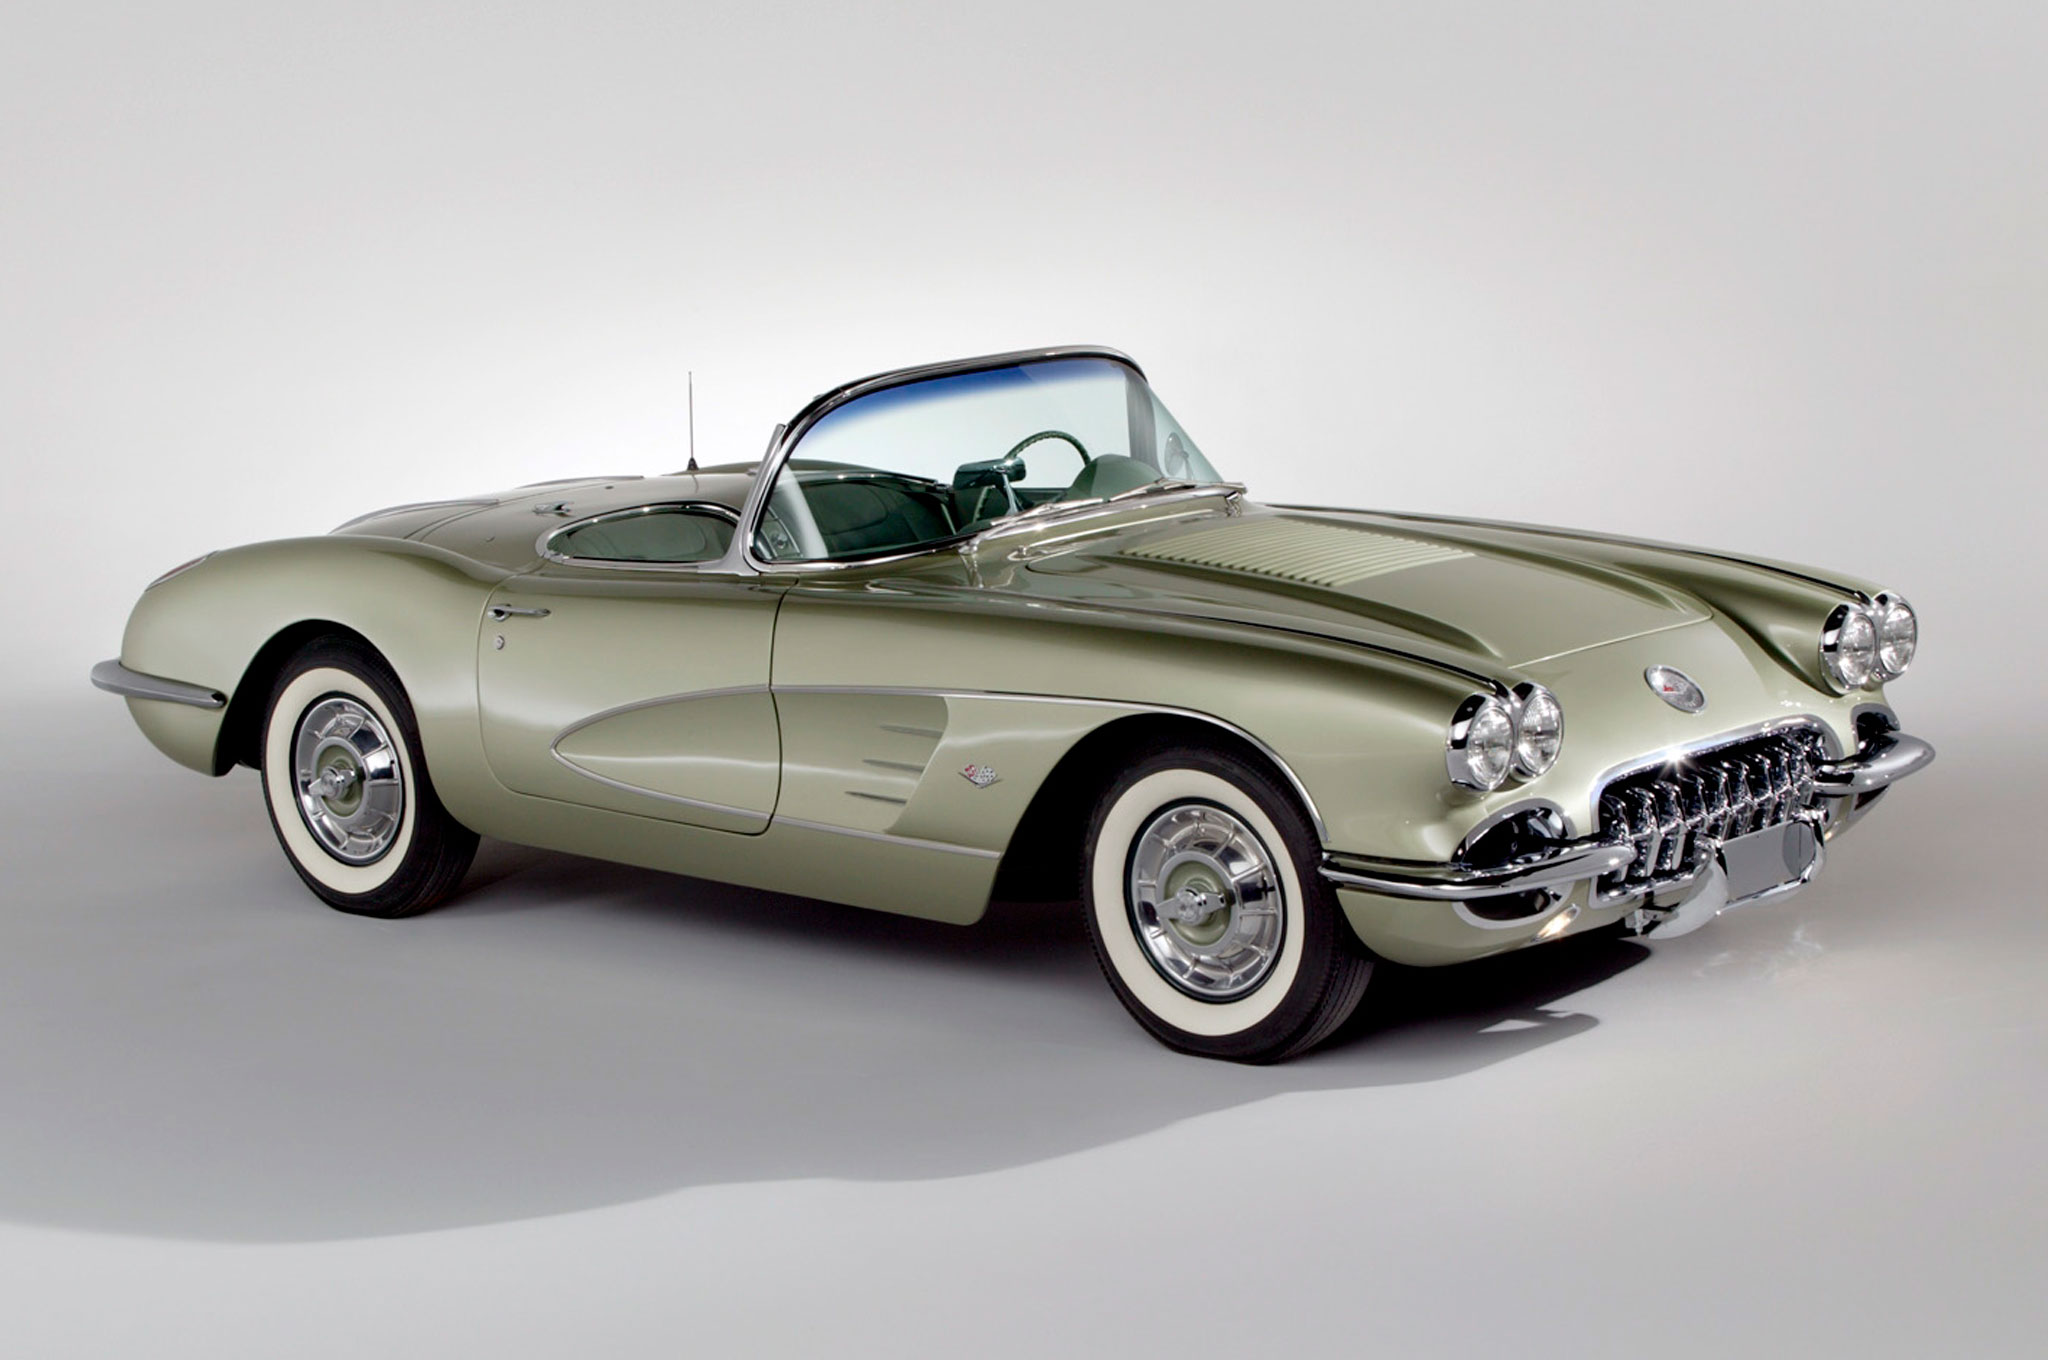 Ruth Glennie's Fancy Free Corvette was restored a decade ago by a private collector.